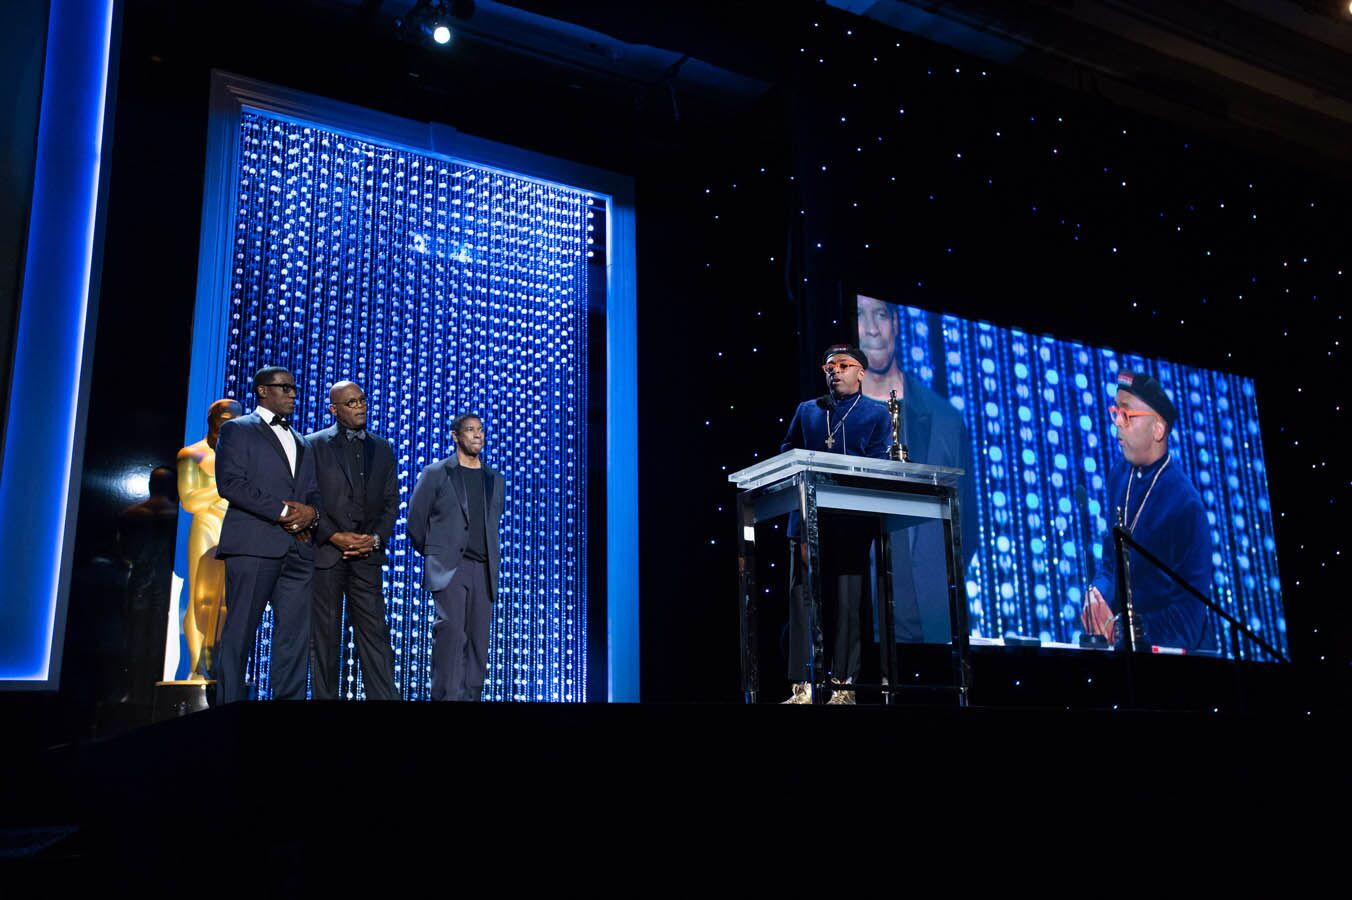 Actor Wesley Snipes, Oscar®-nominated actor Samuel Jackson and Oscar-winning actor Denzel Washington present the Oscar to Honorary Award recipient Spike Lee at the 2015 Governors Awards